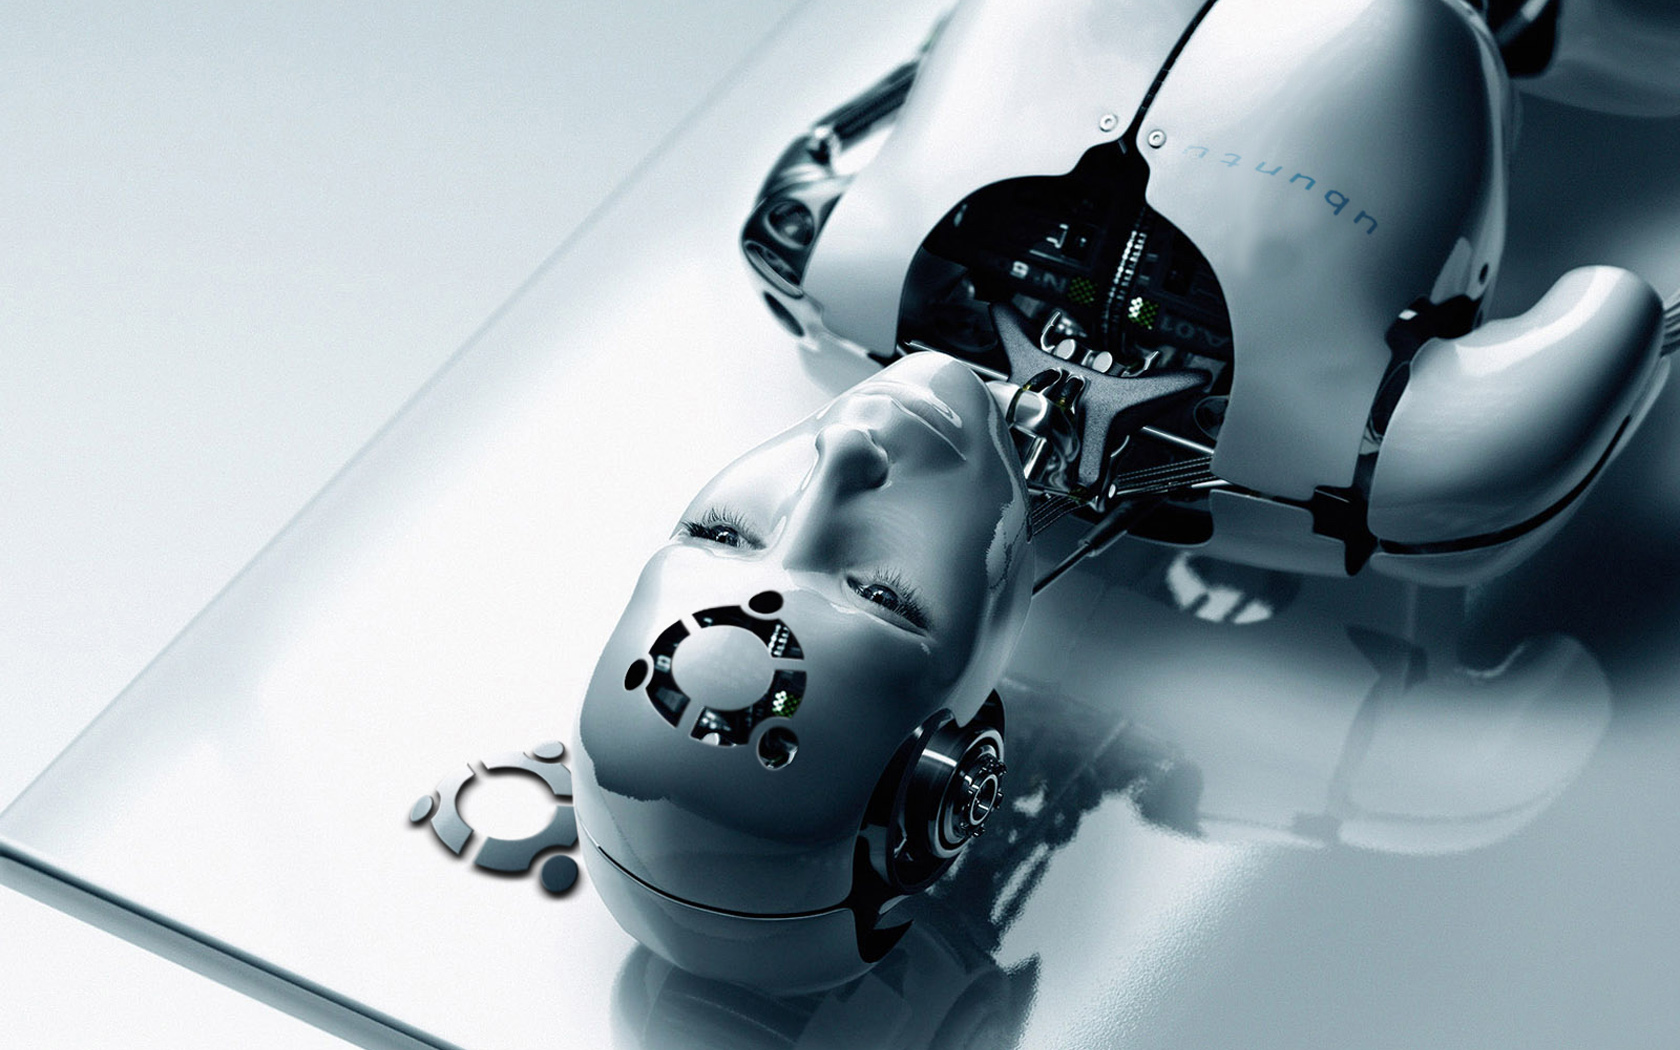 Machine Amp Girls On Pinterest Robot Girl Motorcycles And